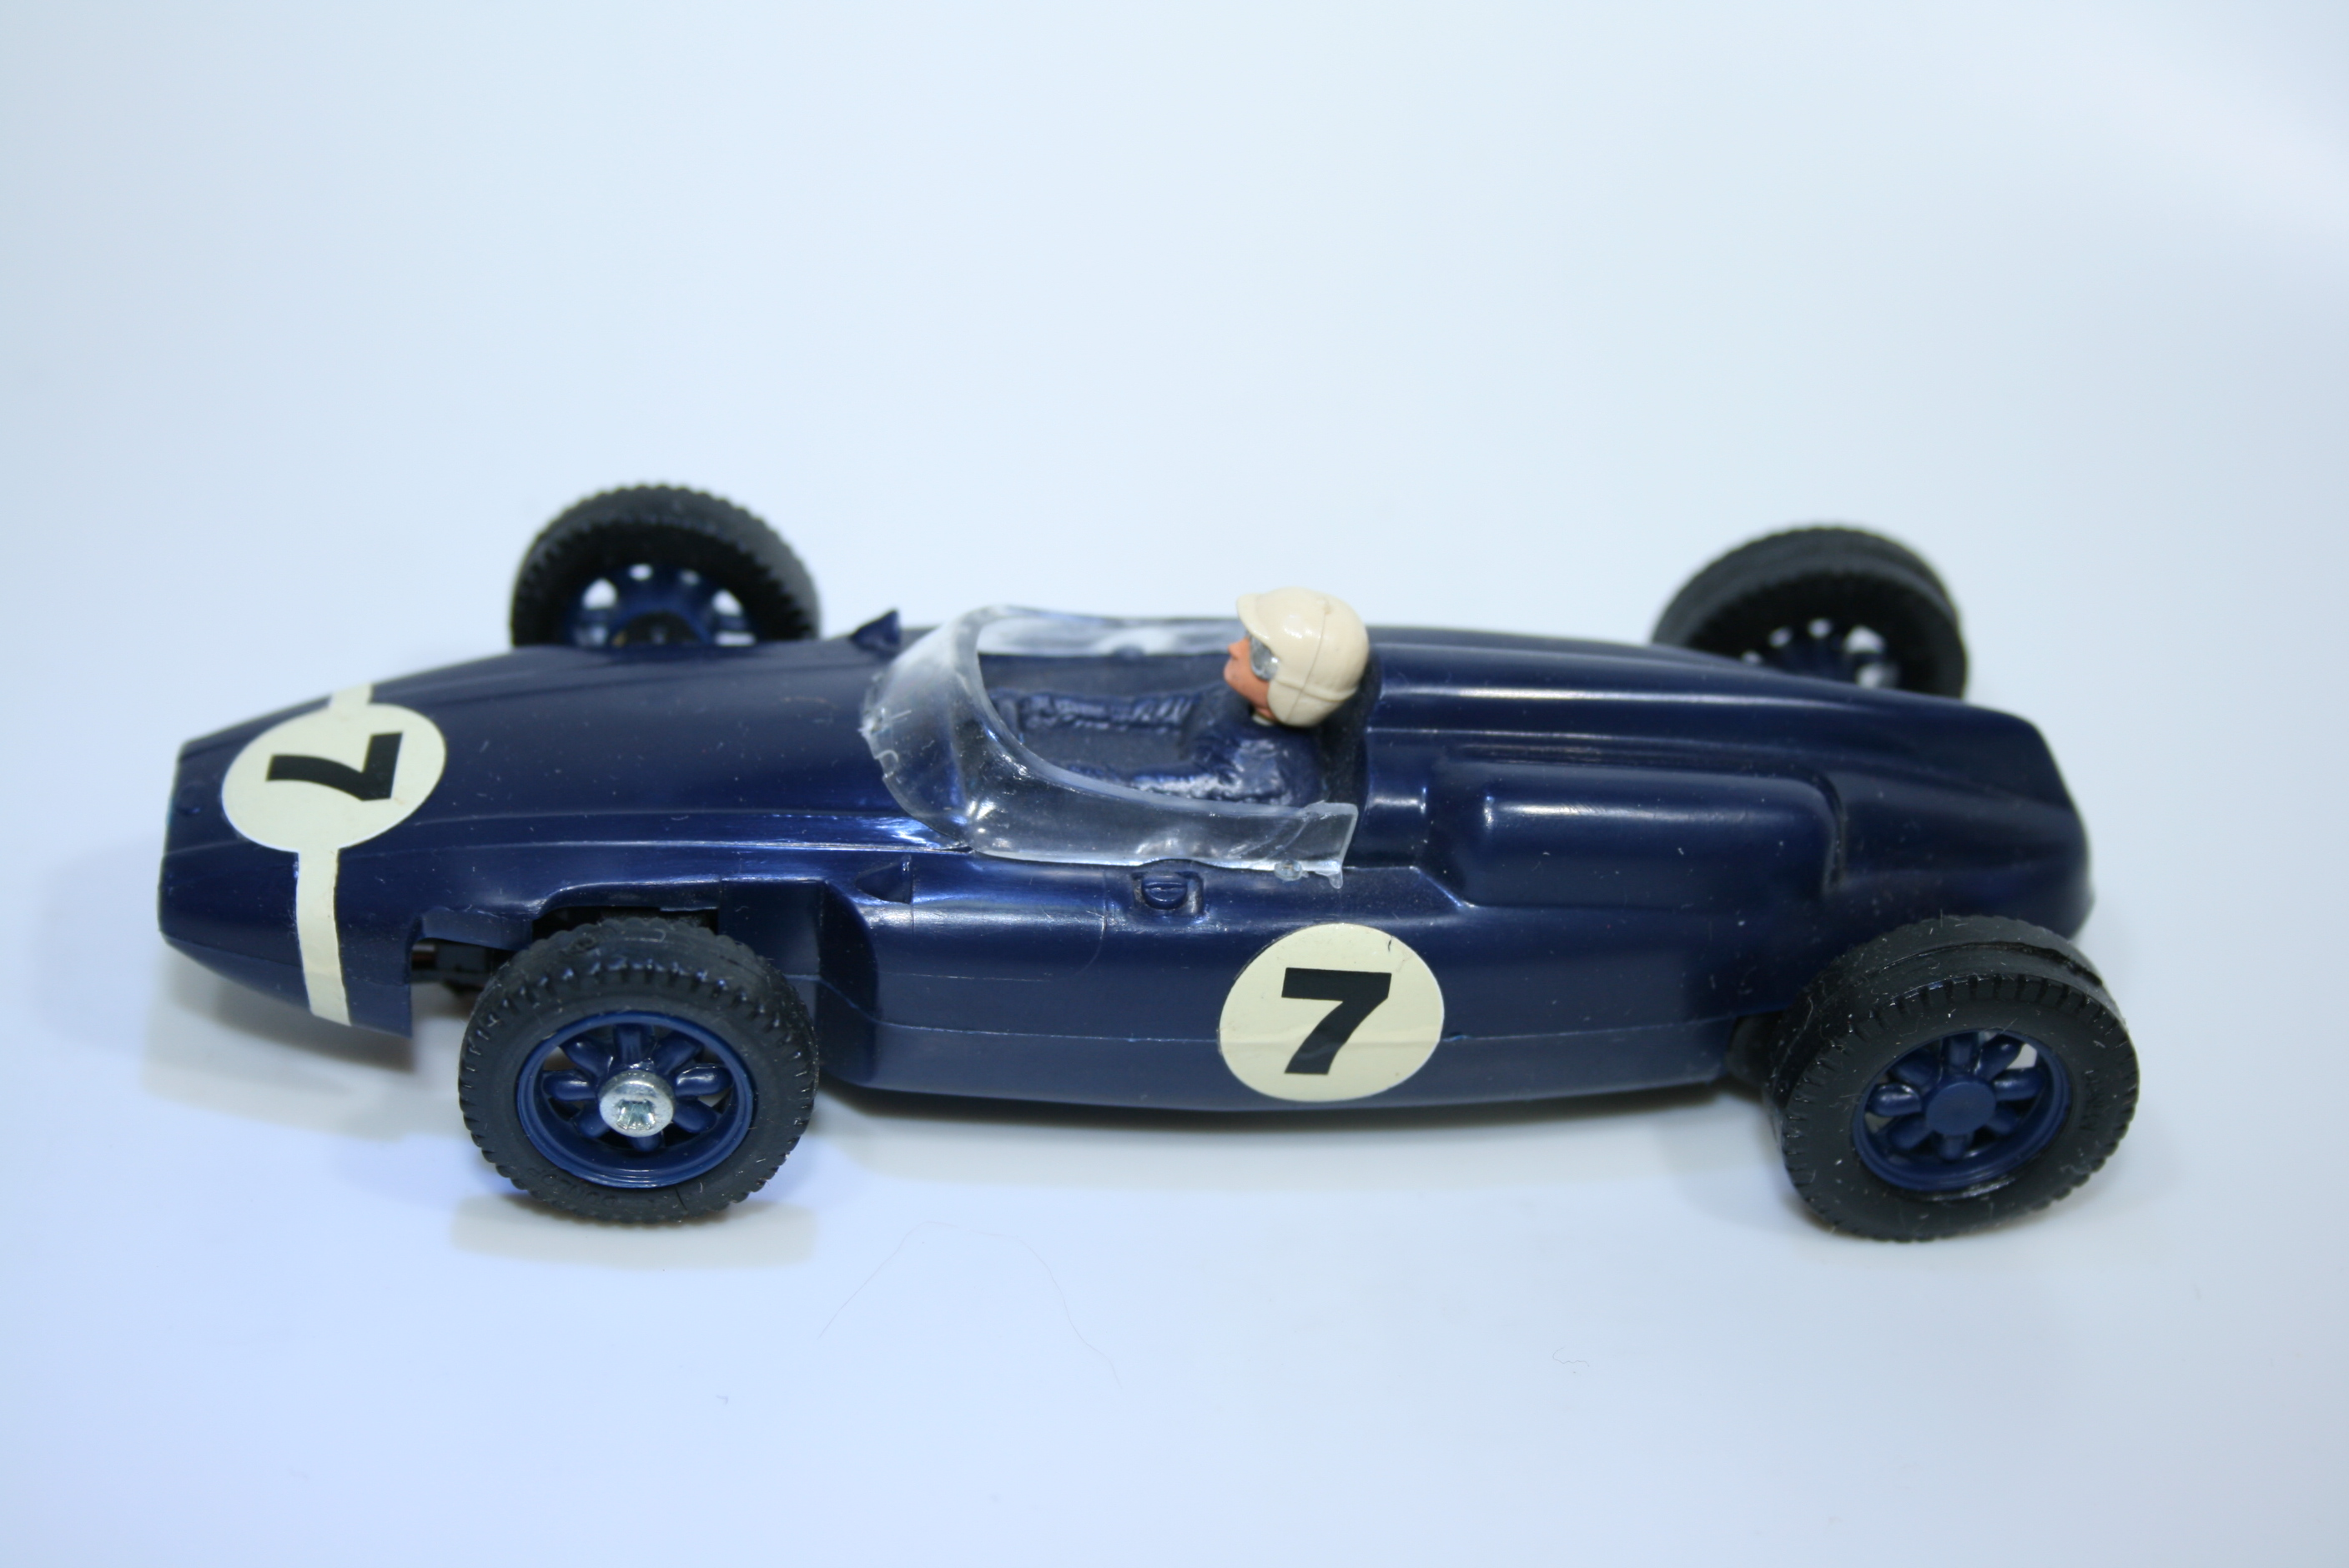 1144 Rob Walker  Cooper T53 1961 R Salvadori MRRC 5150 1967 Boxed